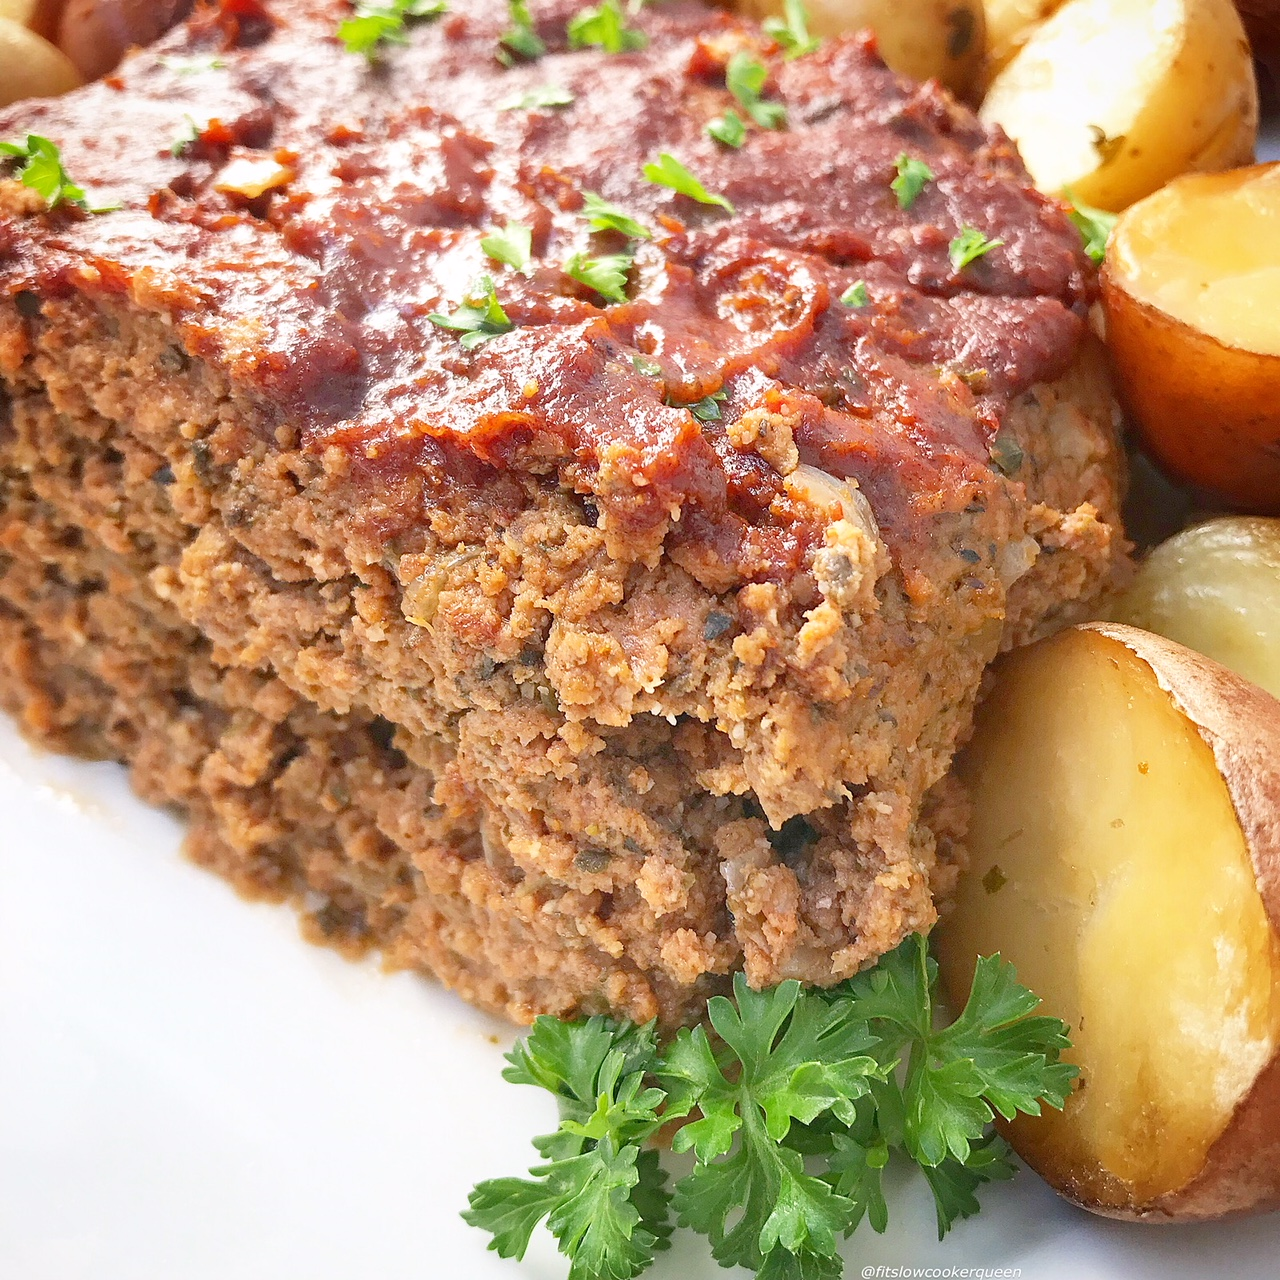 This whole30 meatloaf (paleo option too) and potatoes recipe is made in the slow cooker for an easy meal the entire family will enjoy.